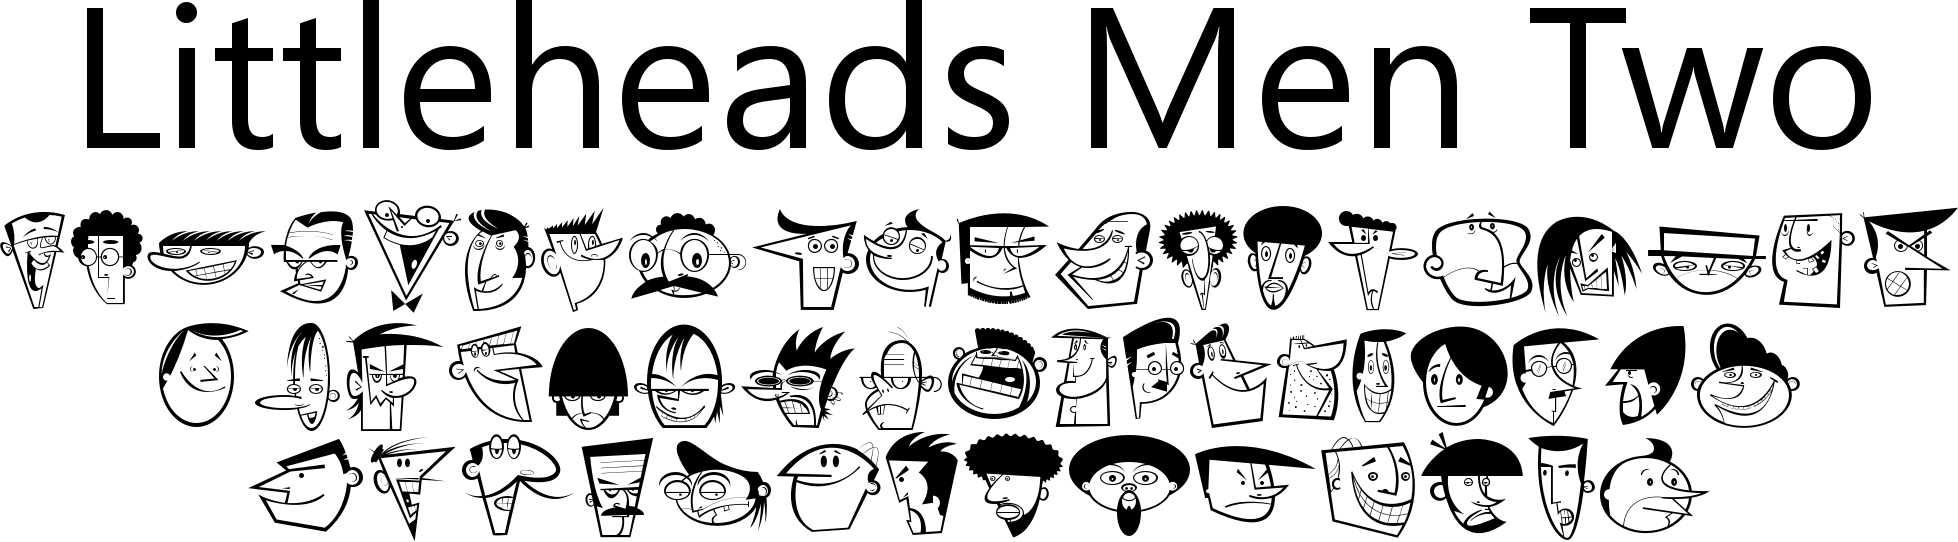 Littleheads Men Two